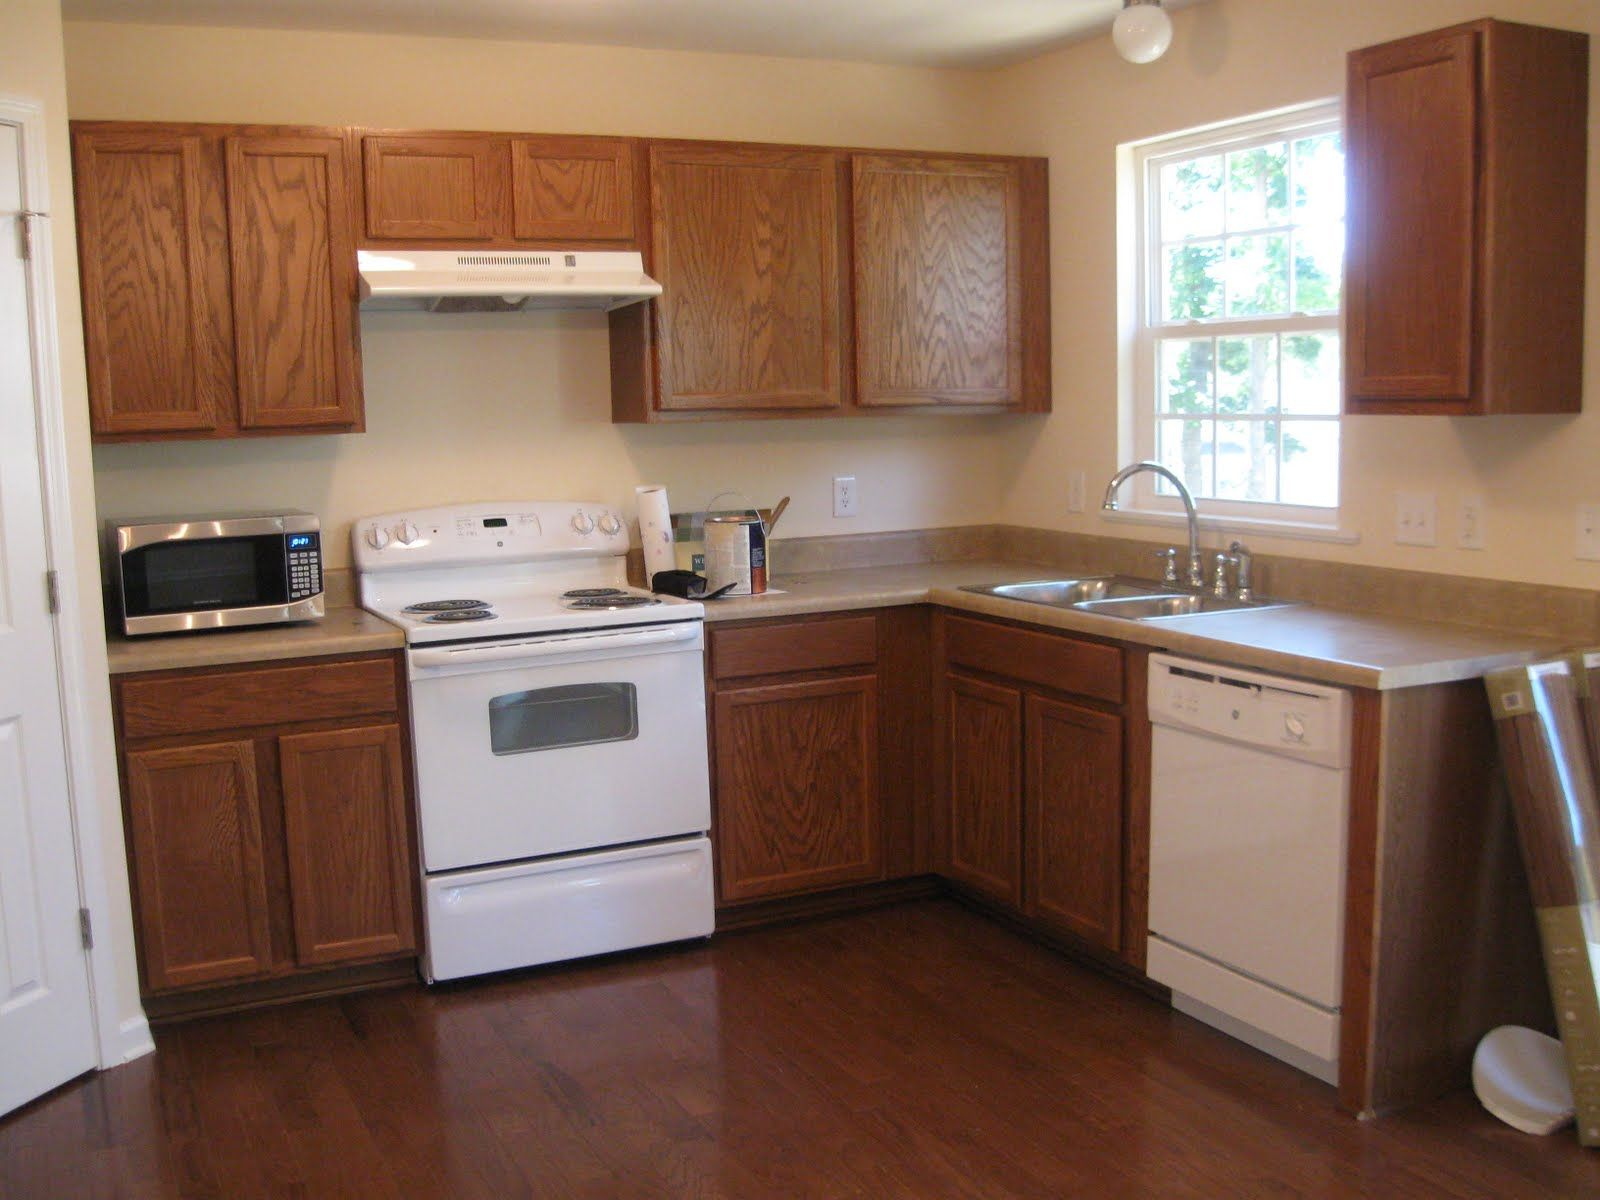 pictures of oak kitchen cabinets painted white oak kitchen cabinets Red Kitchen Walls With Oak Cabinets Newremodelaholic Painting